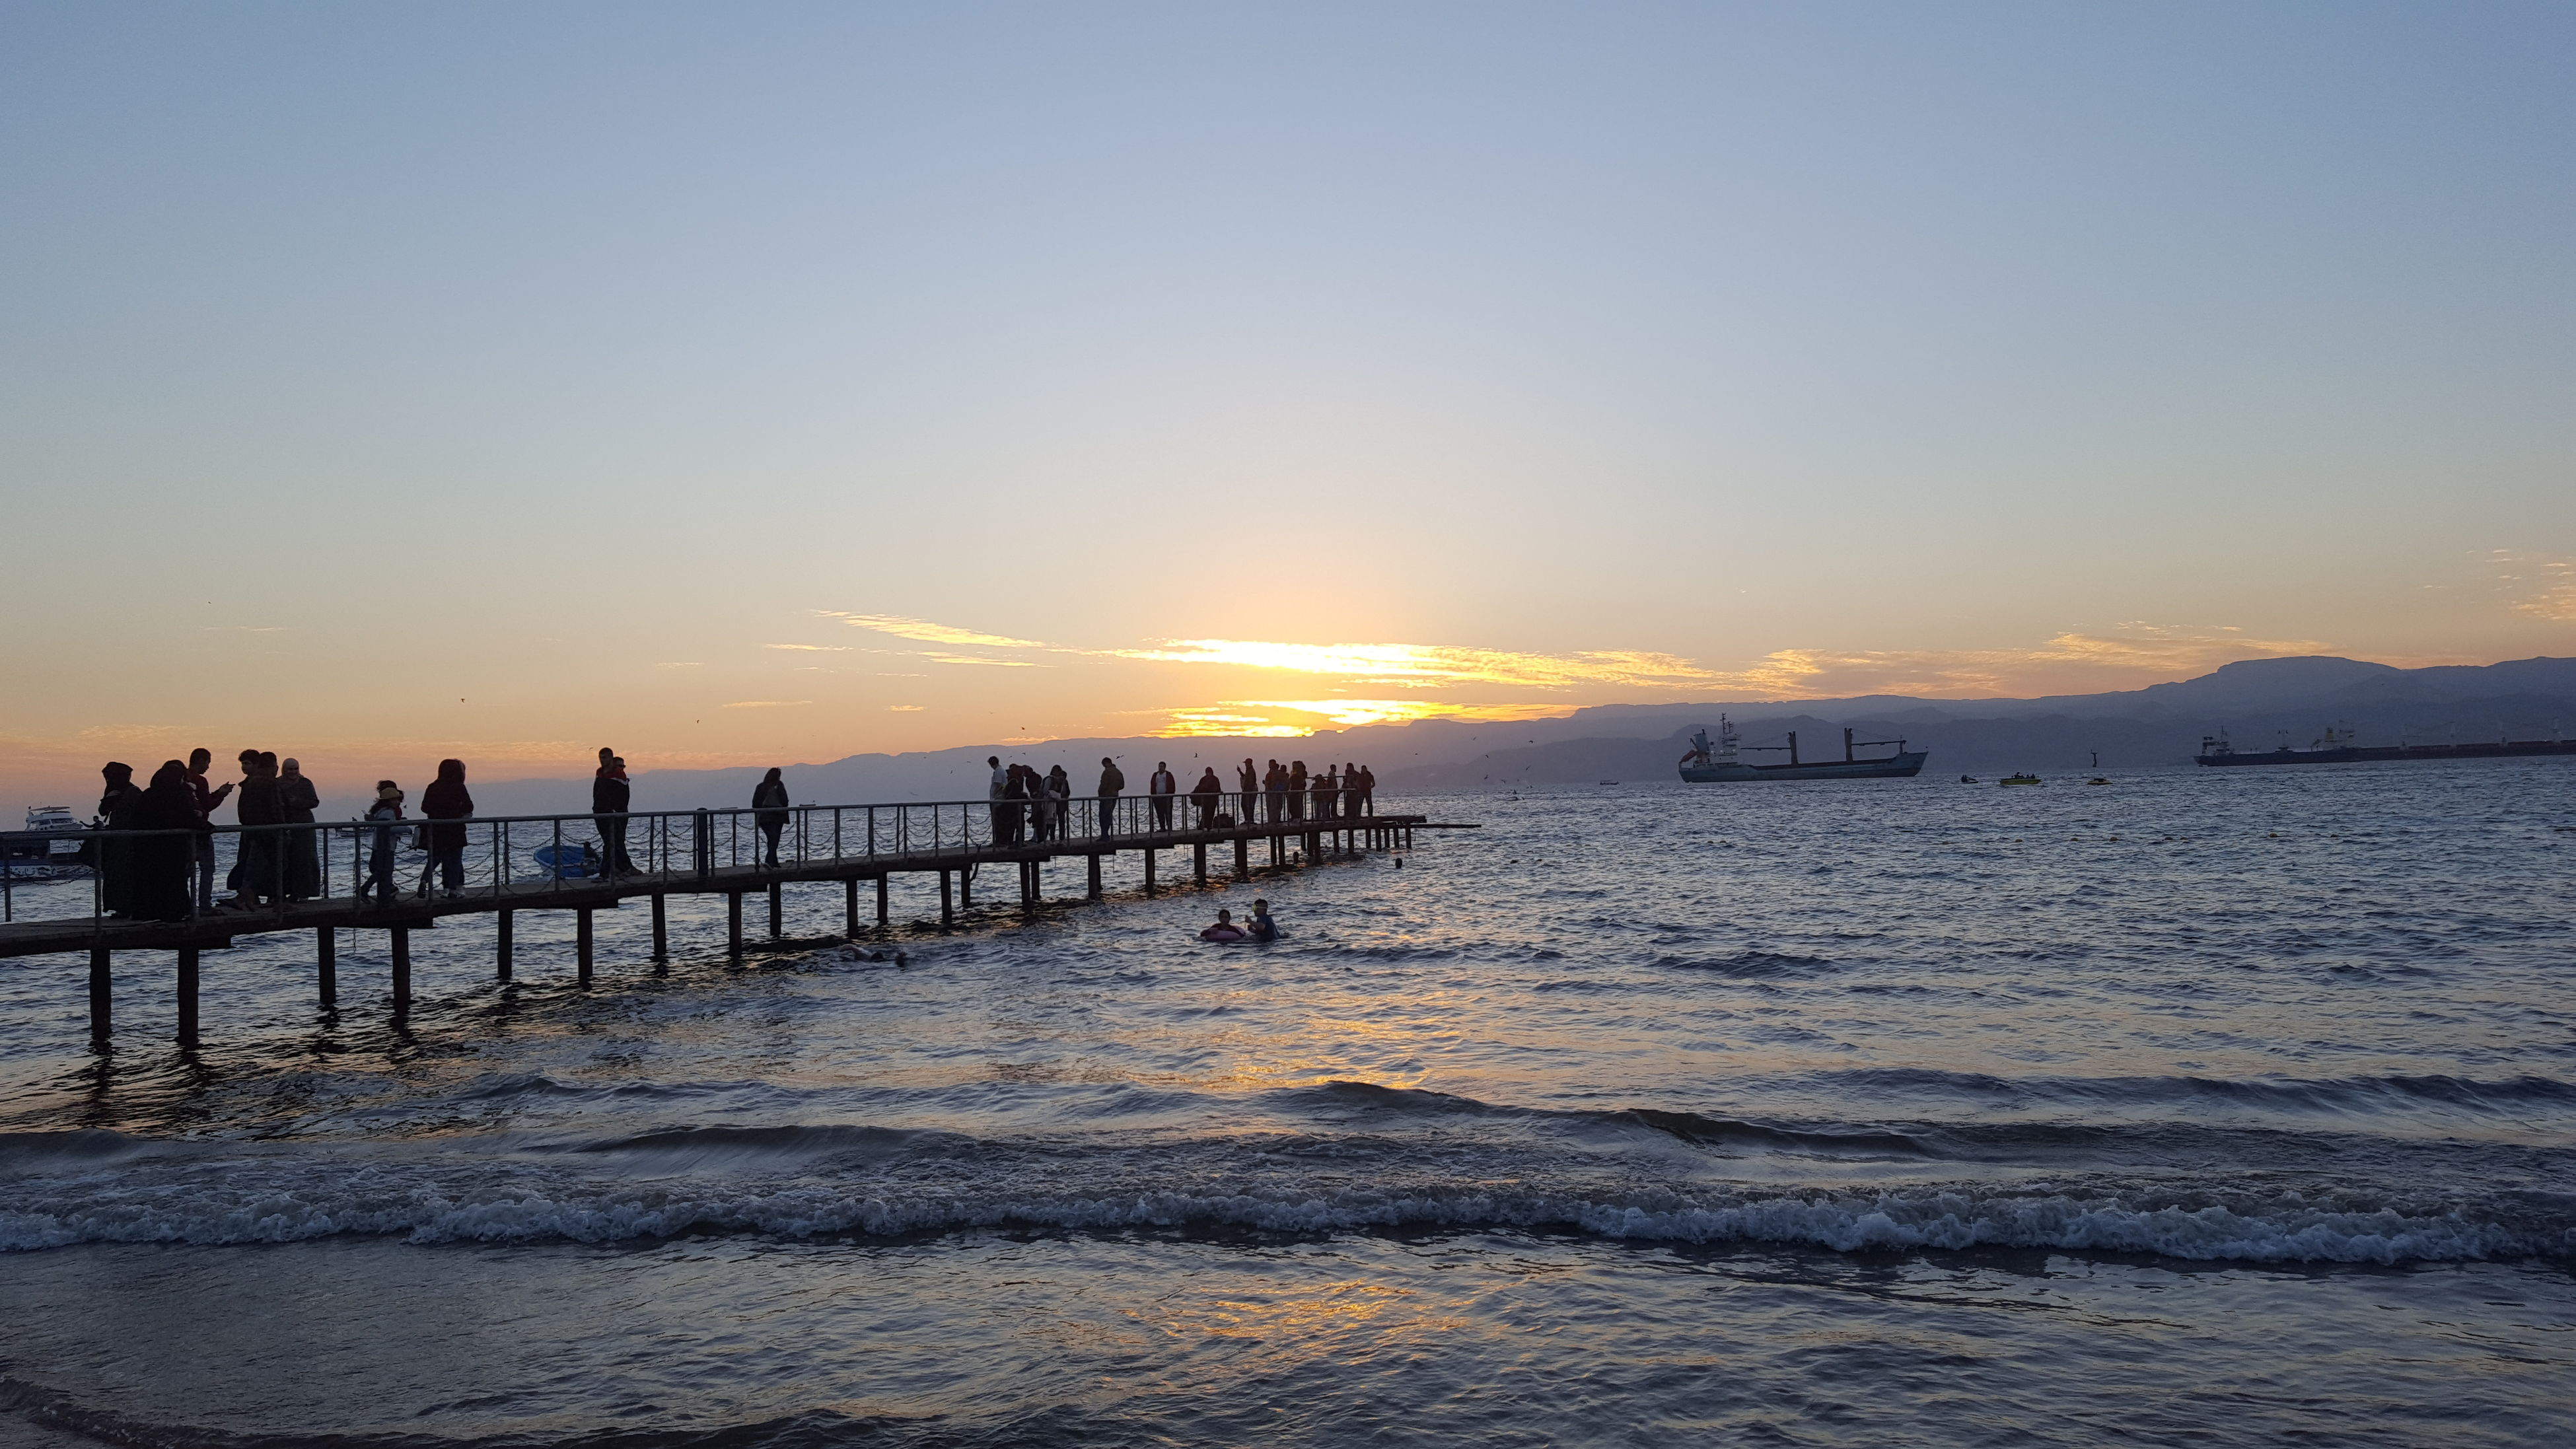 sunset, large group of people, sea, beach, sky, outdoors, nature, scenics, people, horizon over water, men, only men, water, adult, beauty in nature, adults only, day